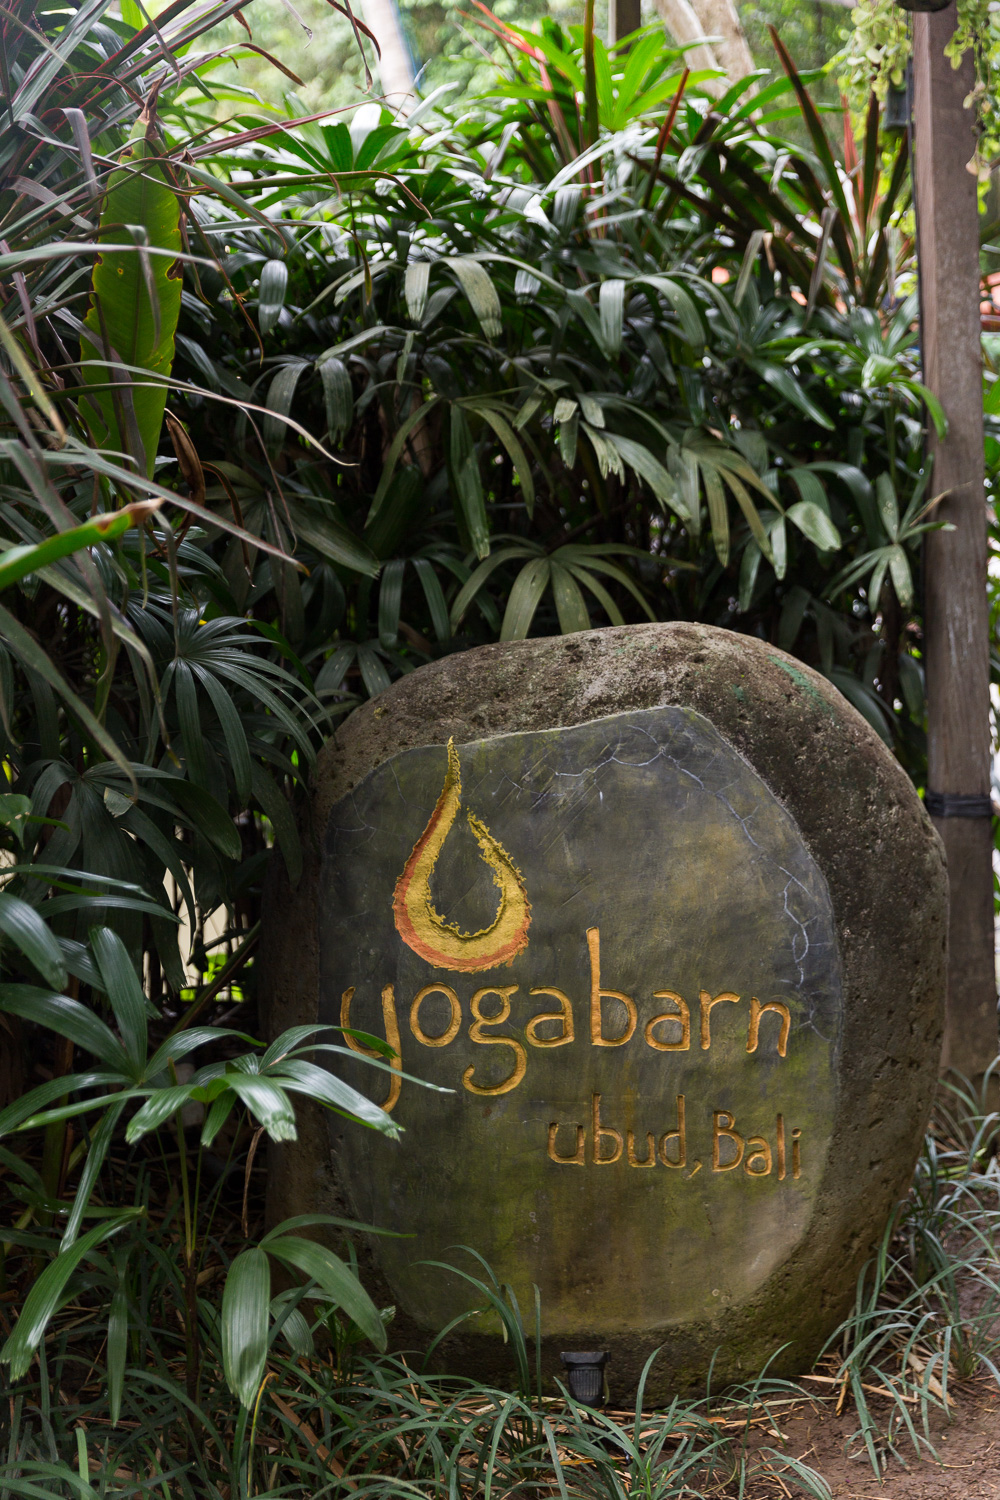 The Yoga Barn - Ubud Bali